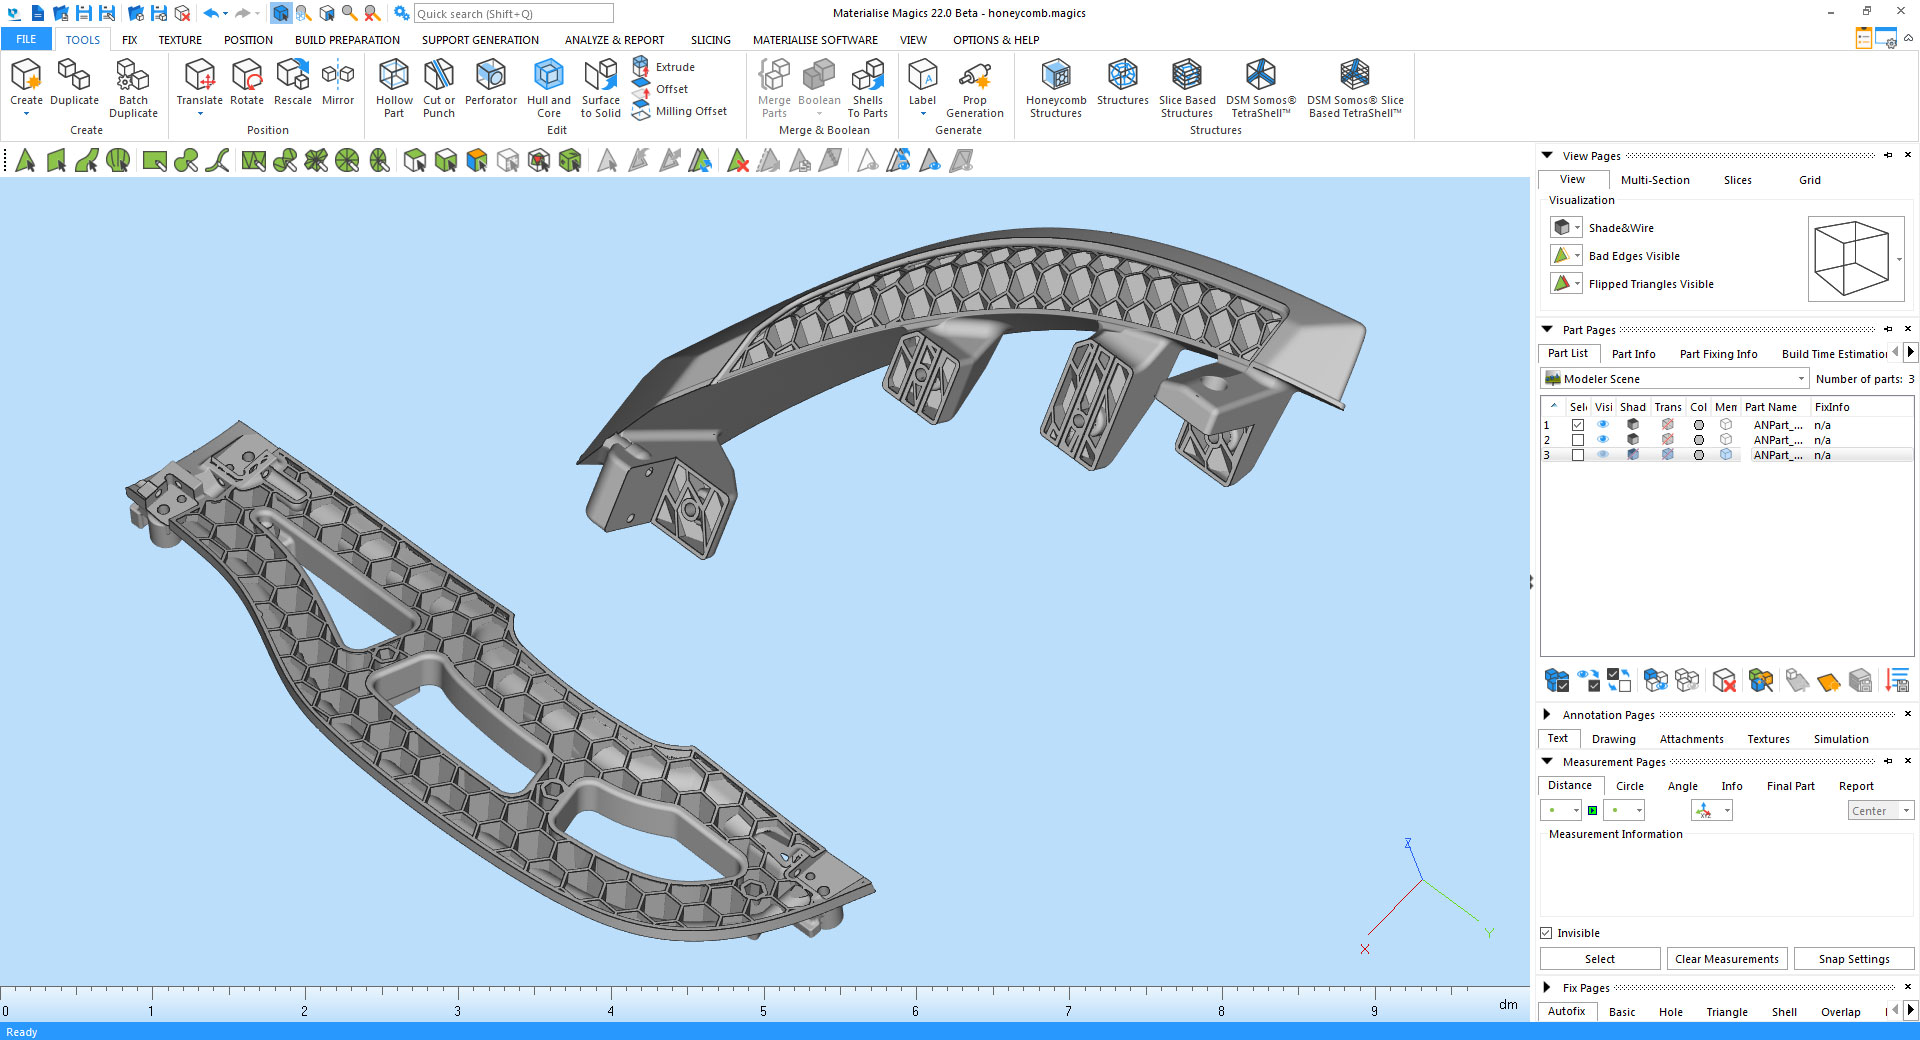 Screenshot of a honeycomb structure in Materialise Magics22